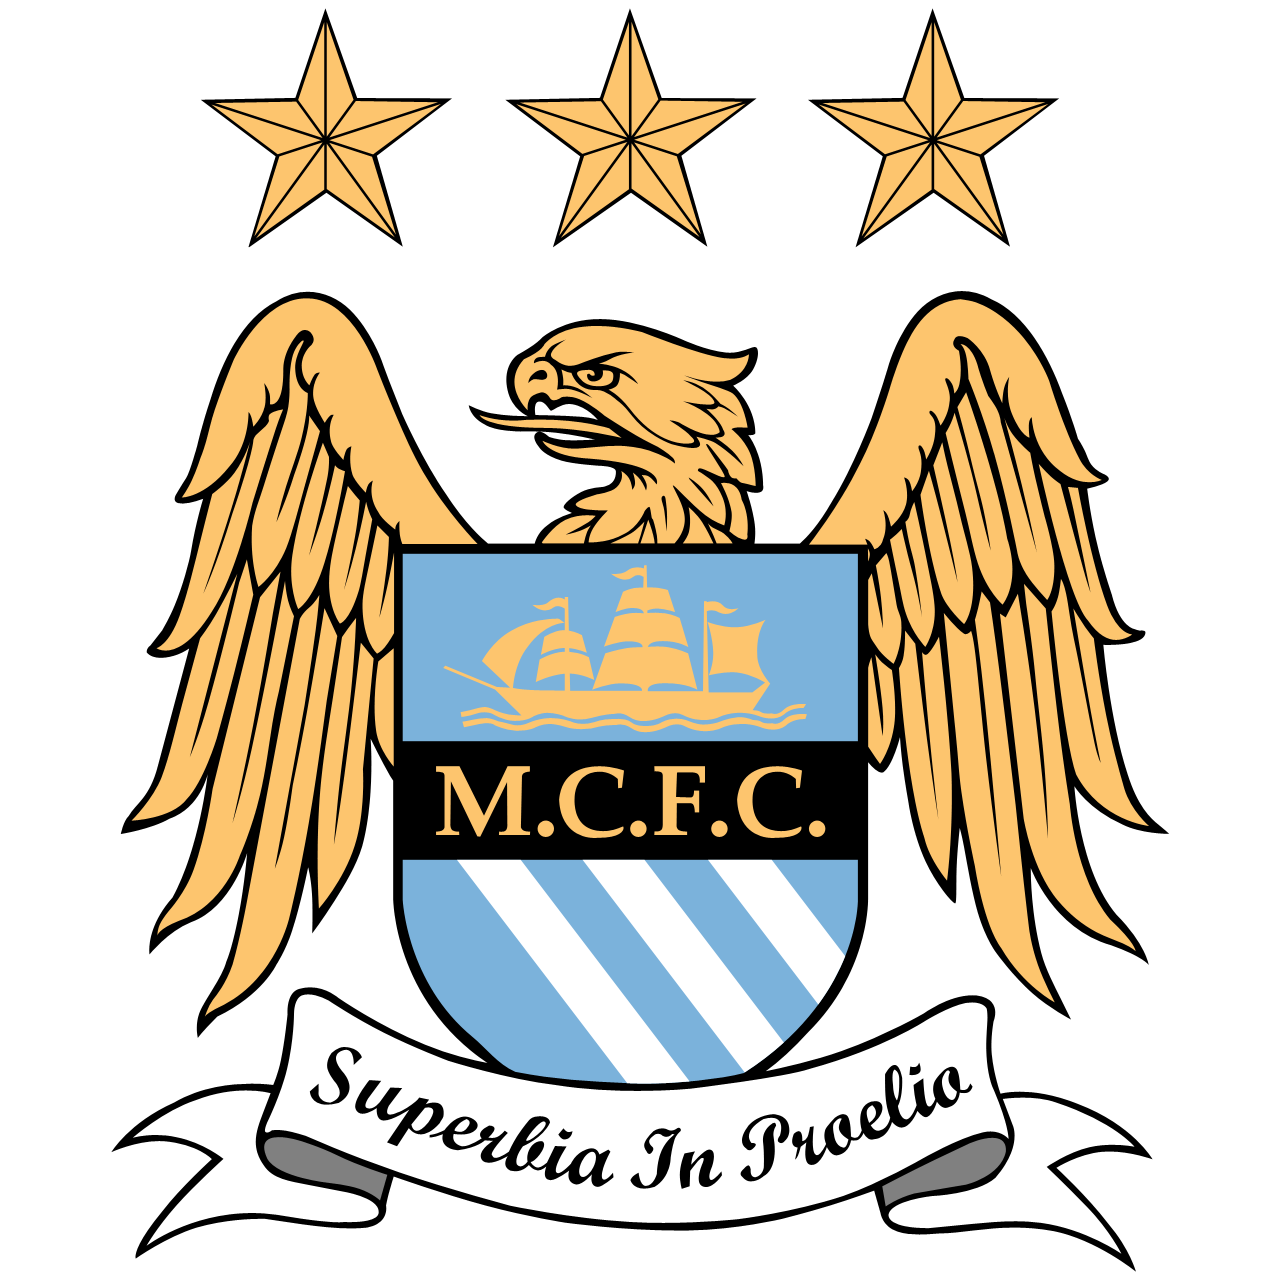 Barclays Premier League Logos moto Superbia in Proelia